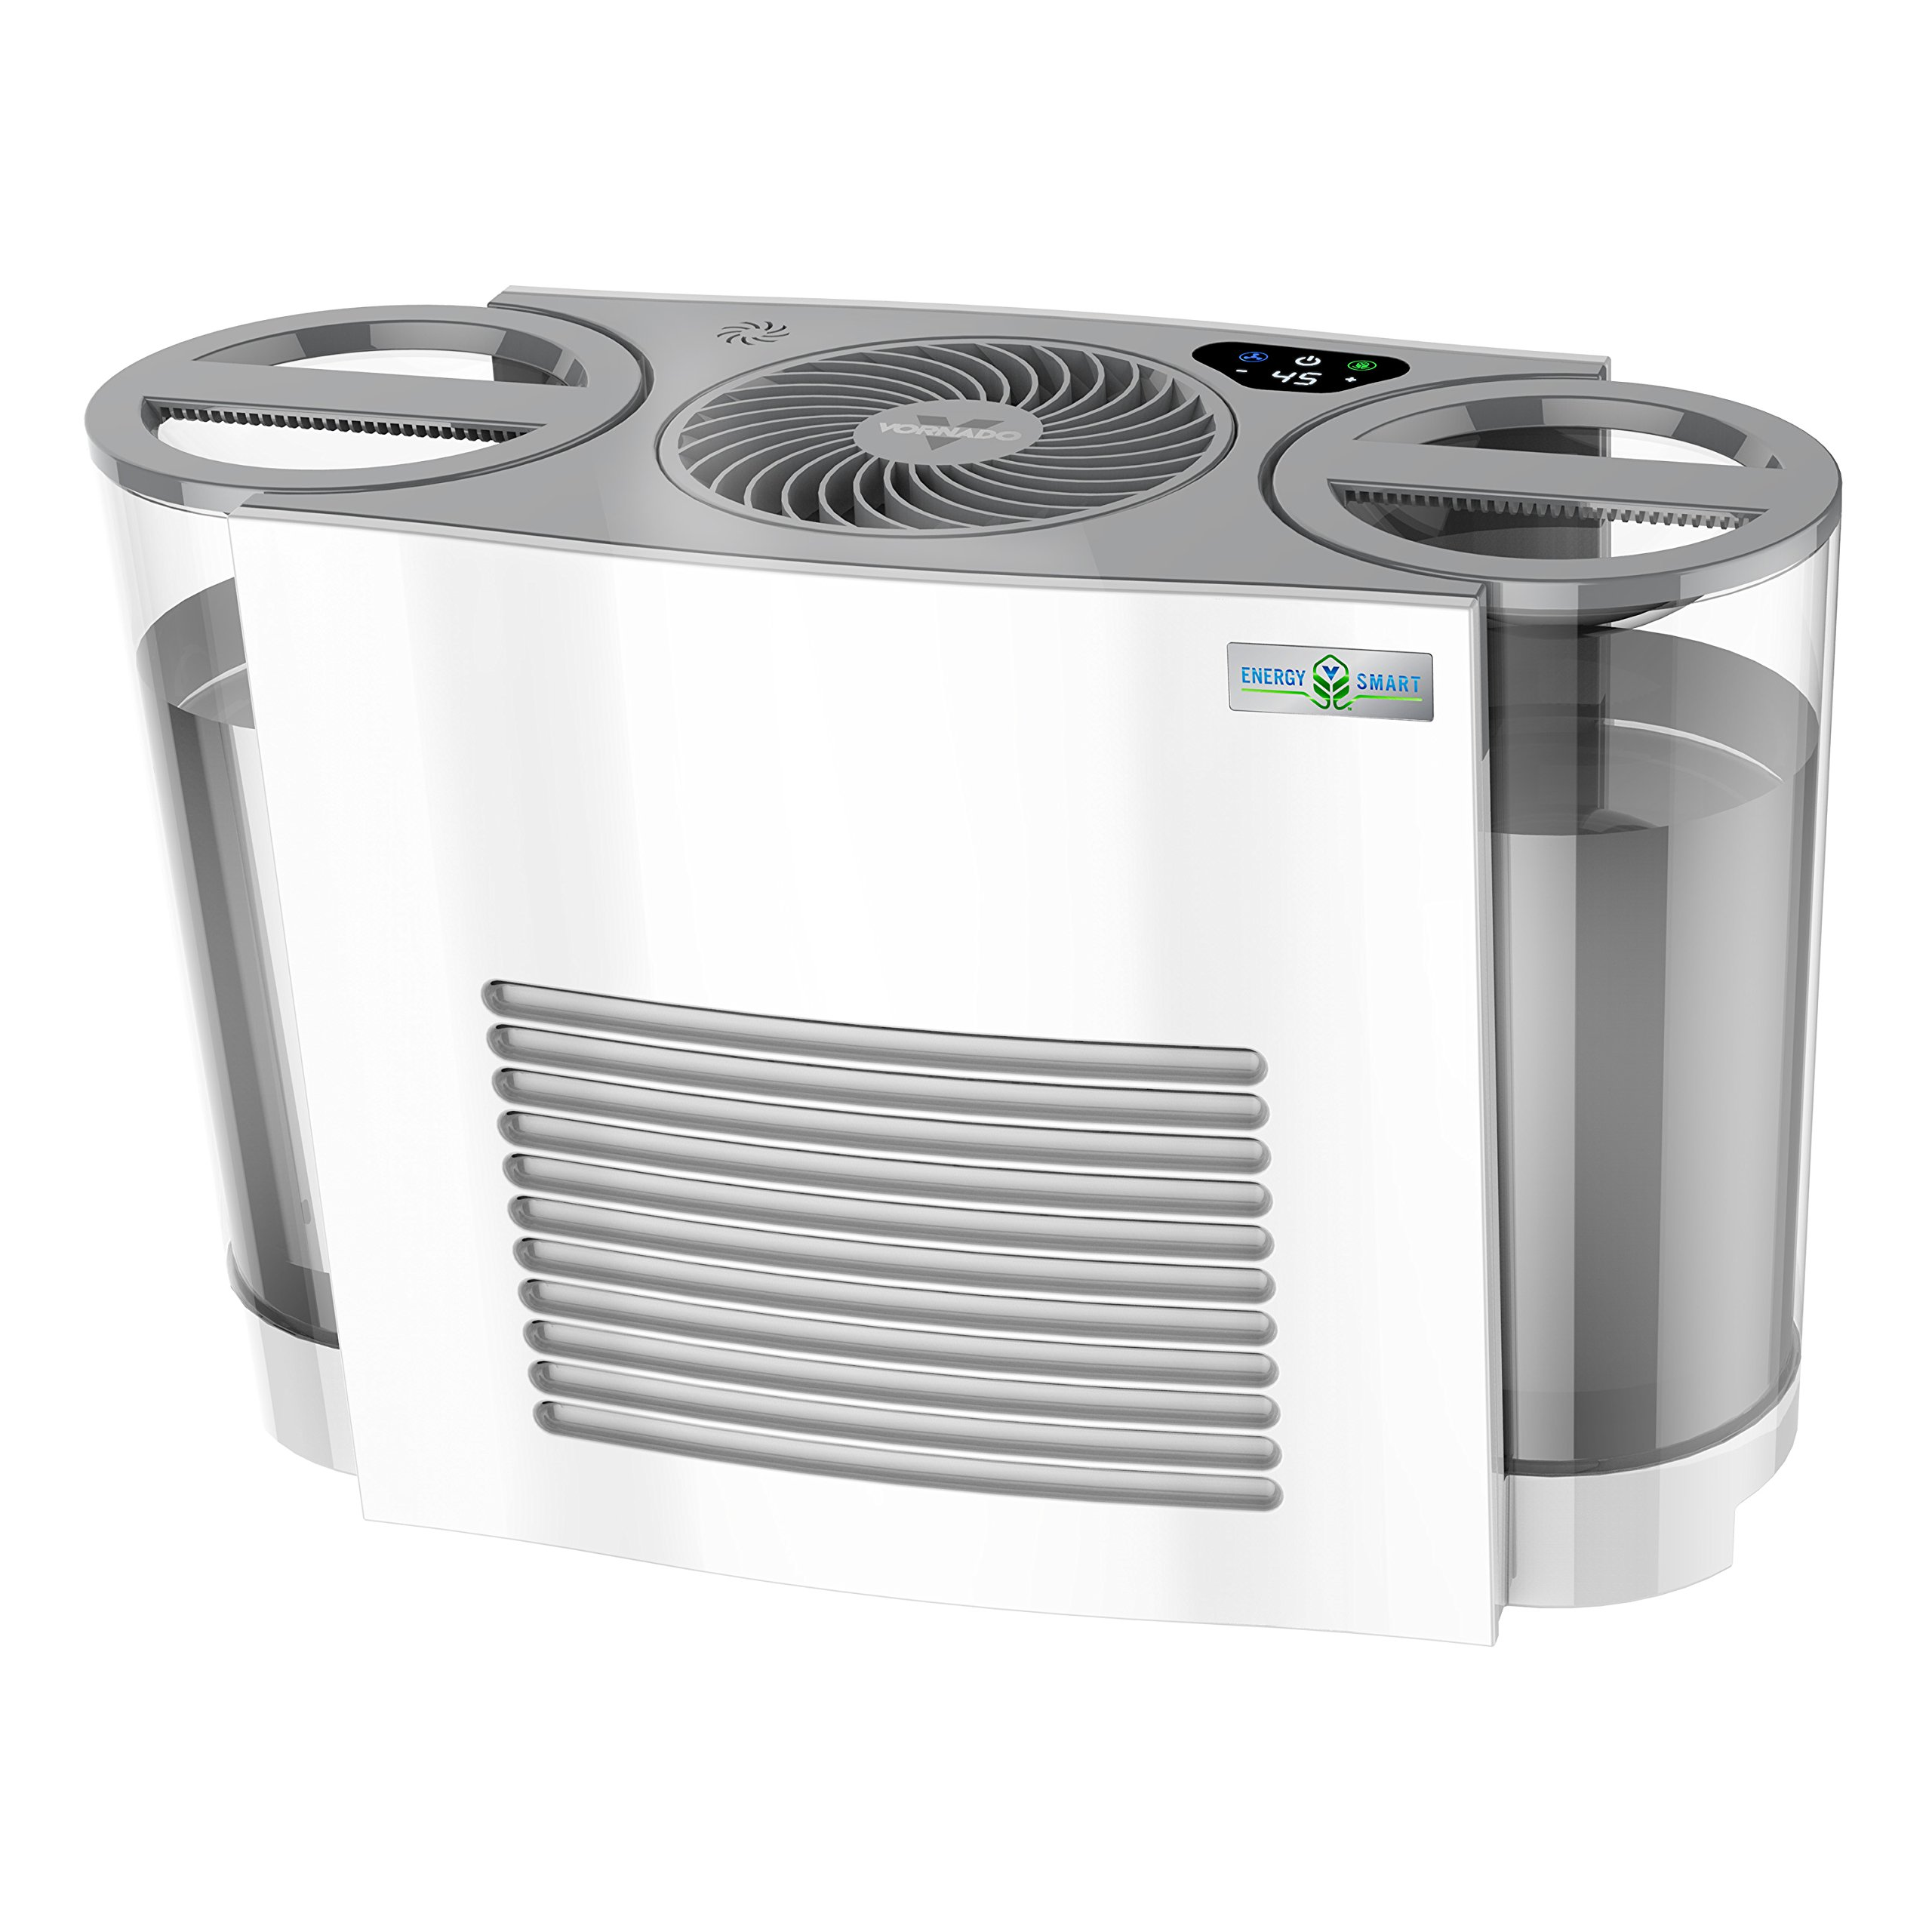 Vornado EVDC500 Energy Smart Evaporative Humidifier with Automatic Shut-off, 2 Gallon Capacity, LED Display by Vornado